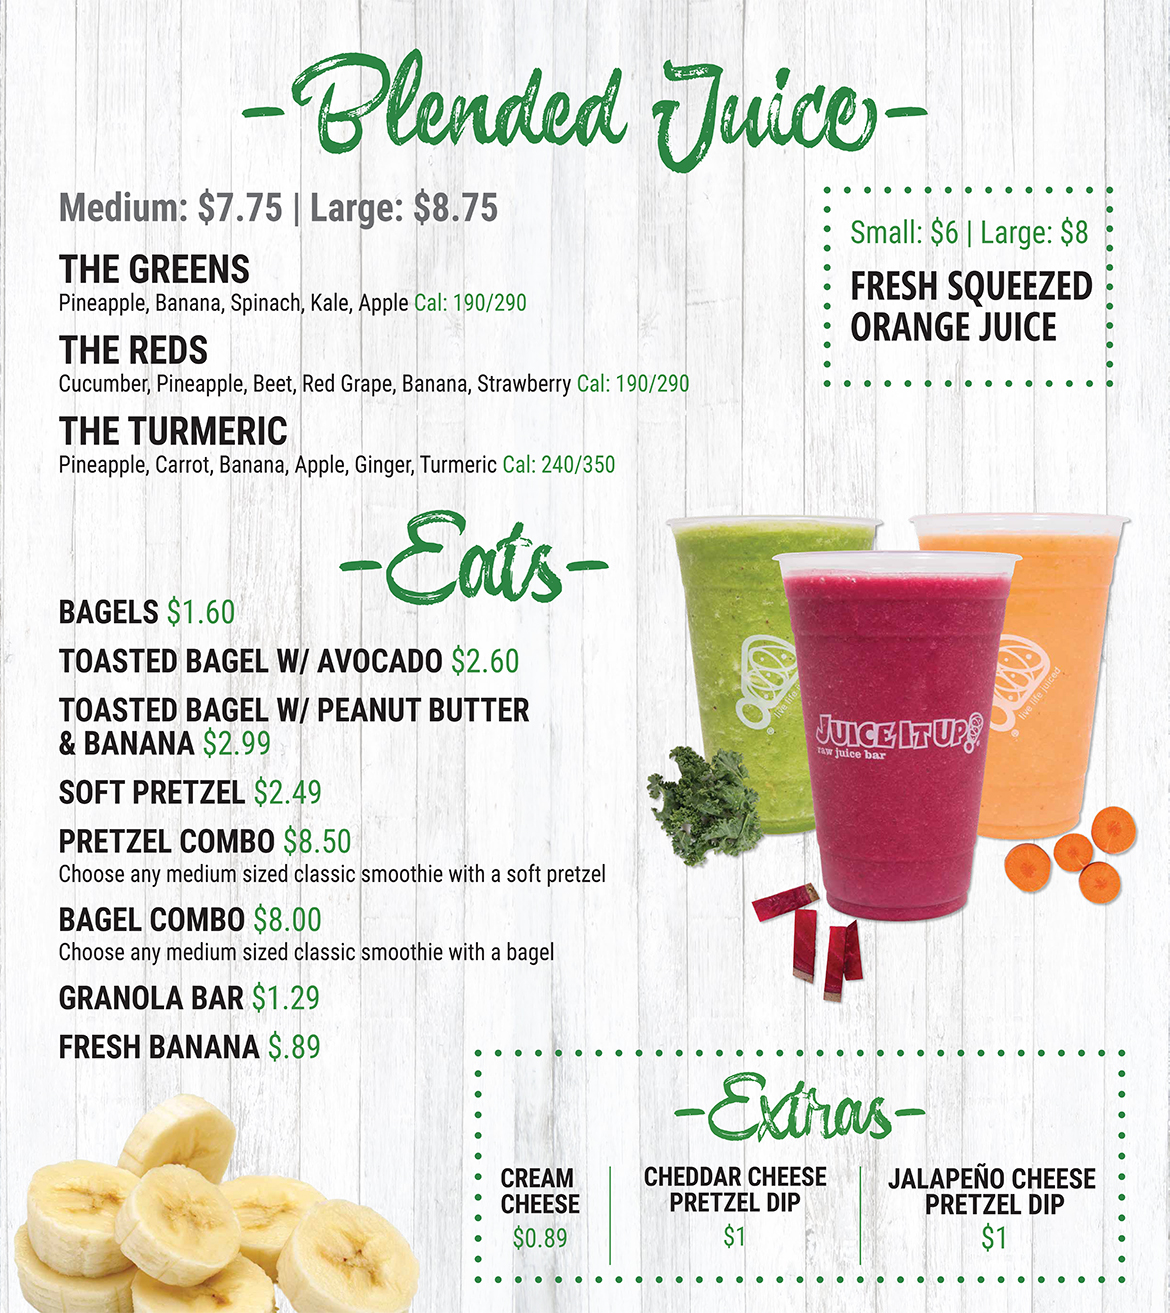 Blended Juice. Medium - $7.75. Large - $8.75. The Greens: Pineapple, Banana, Spinach, Kale, and Apple. Calories: 190/290. The Reds: Cucumber, Pineapple, Beet, Red Grape, Banana, and Strawberry. Calories: 190/290. The Turmeric: Pineapple, Carrot, Banana, Apple, Ginger, and Turmeric. Calories: 240/350. Eats. Muffins - $1.69. Bagels - $1.60. Toasted Bagel with Avocado - $2.60. Toasted Bagel with Peanut Butter and Banana - $2.99. Soft Pretzel - $2.49. Pretzel Combo: Choose any medium sized classic smoothie with a soft pretzel - $8.50. Bagel Combo: Choose any medium sized classic smoothie with a bagel - $8. Granola Bar - $1.29. Fresh Banana - $.89. Fresh Squeezed Orange Juice: Small - $6. Large - $8. Extras. Cream Cheese - $0.89. Cheddar Cheese Pretzel Dip - $1. Jalapeno Cheese Pretzel Dip - $1.